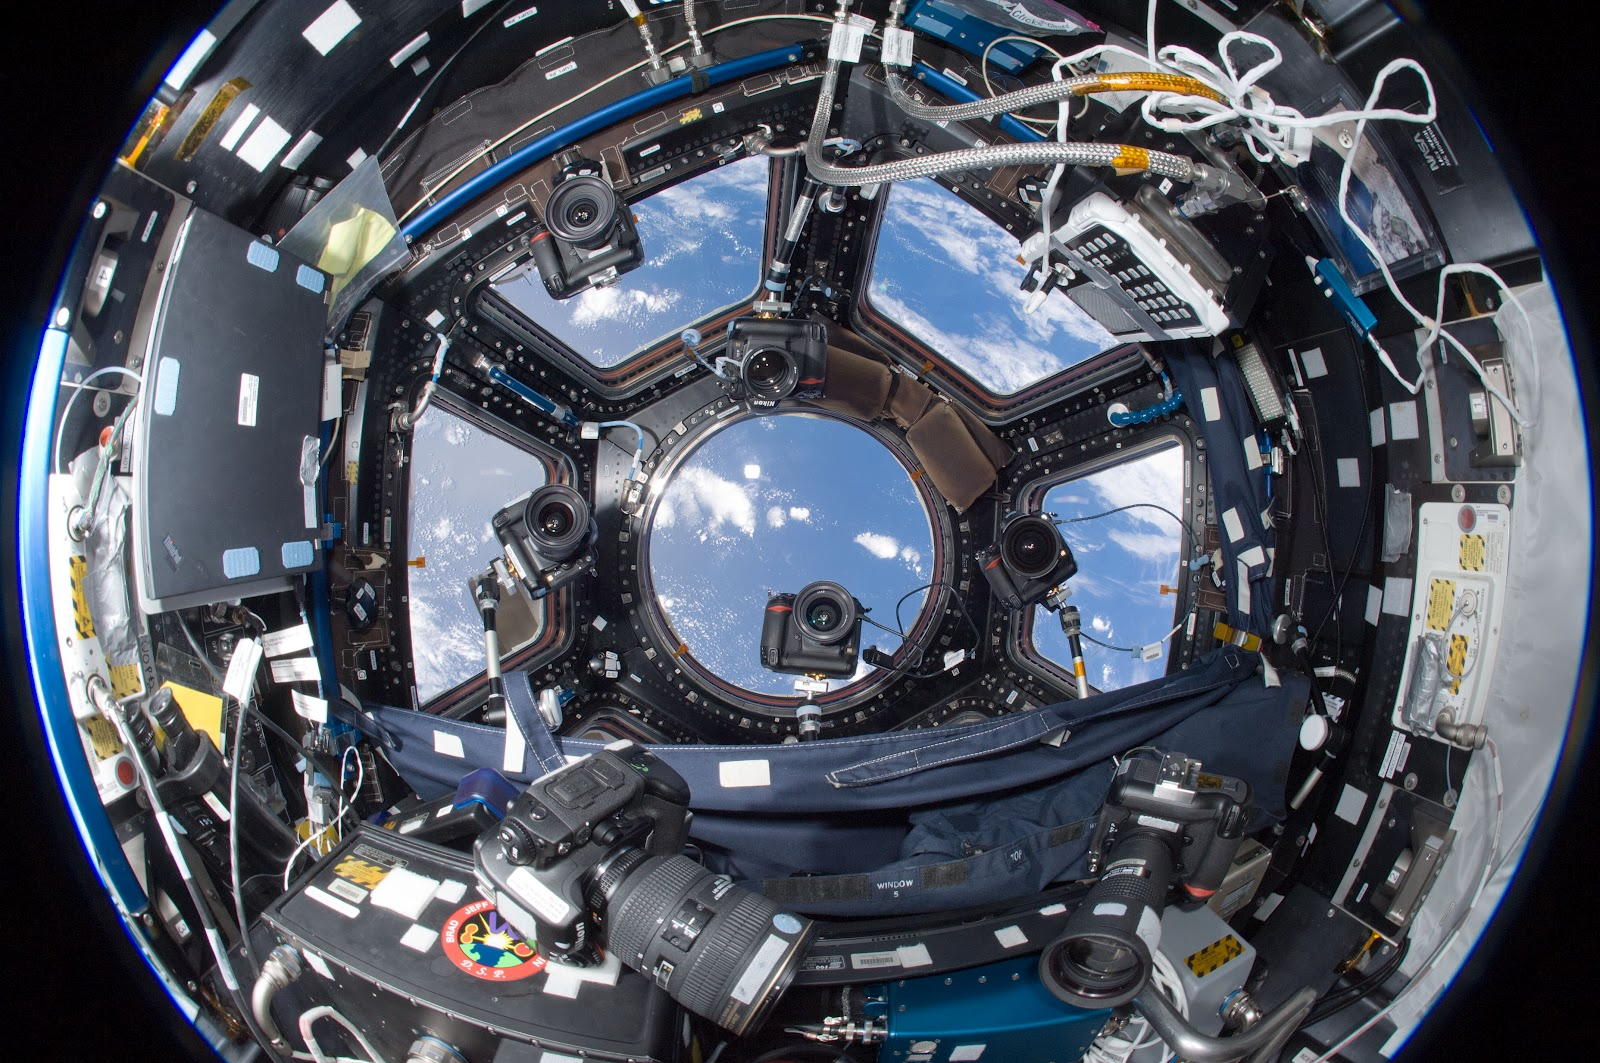 Cameras on the International Space Station Taking Photos of Earth